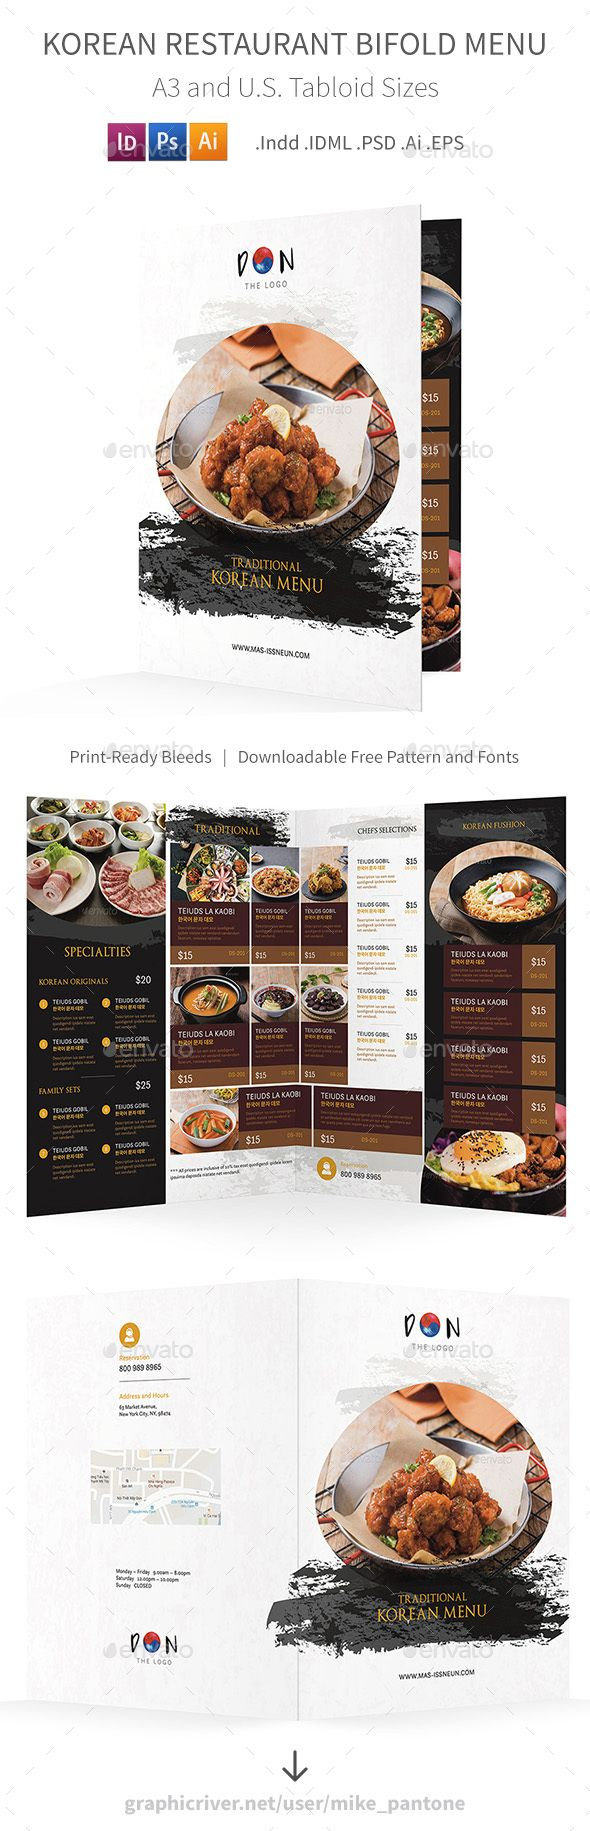 korean restaurant bifold halffold brochure template psd vector eps indesign indd ai. Black Bedroom Furniture Sets. Home Design Ideas